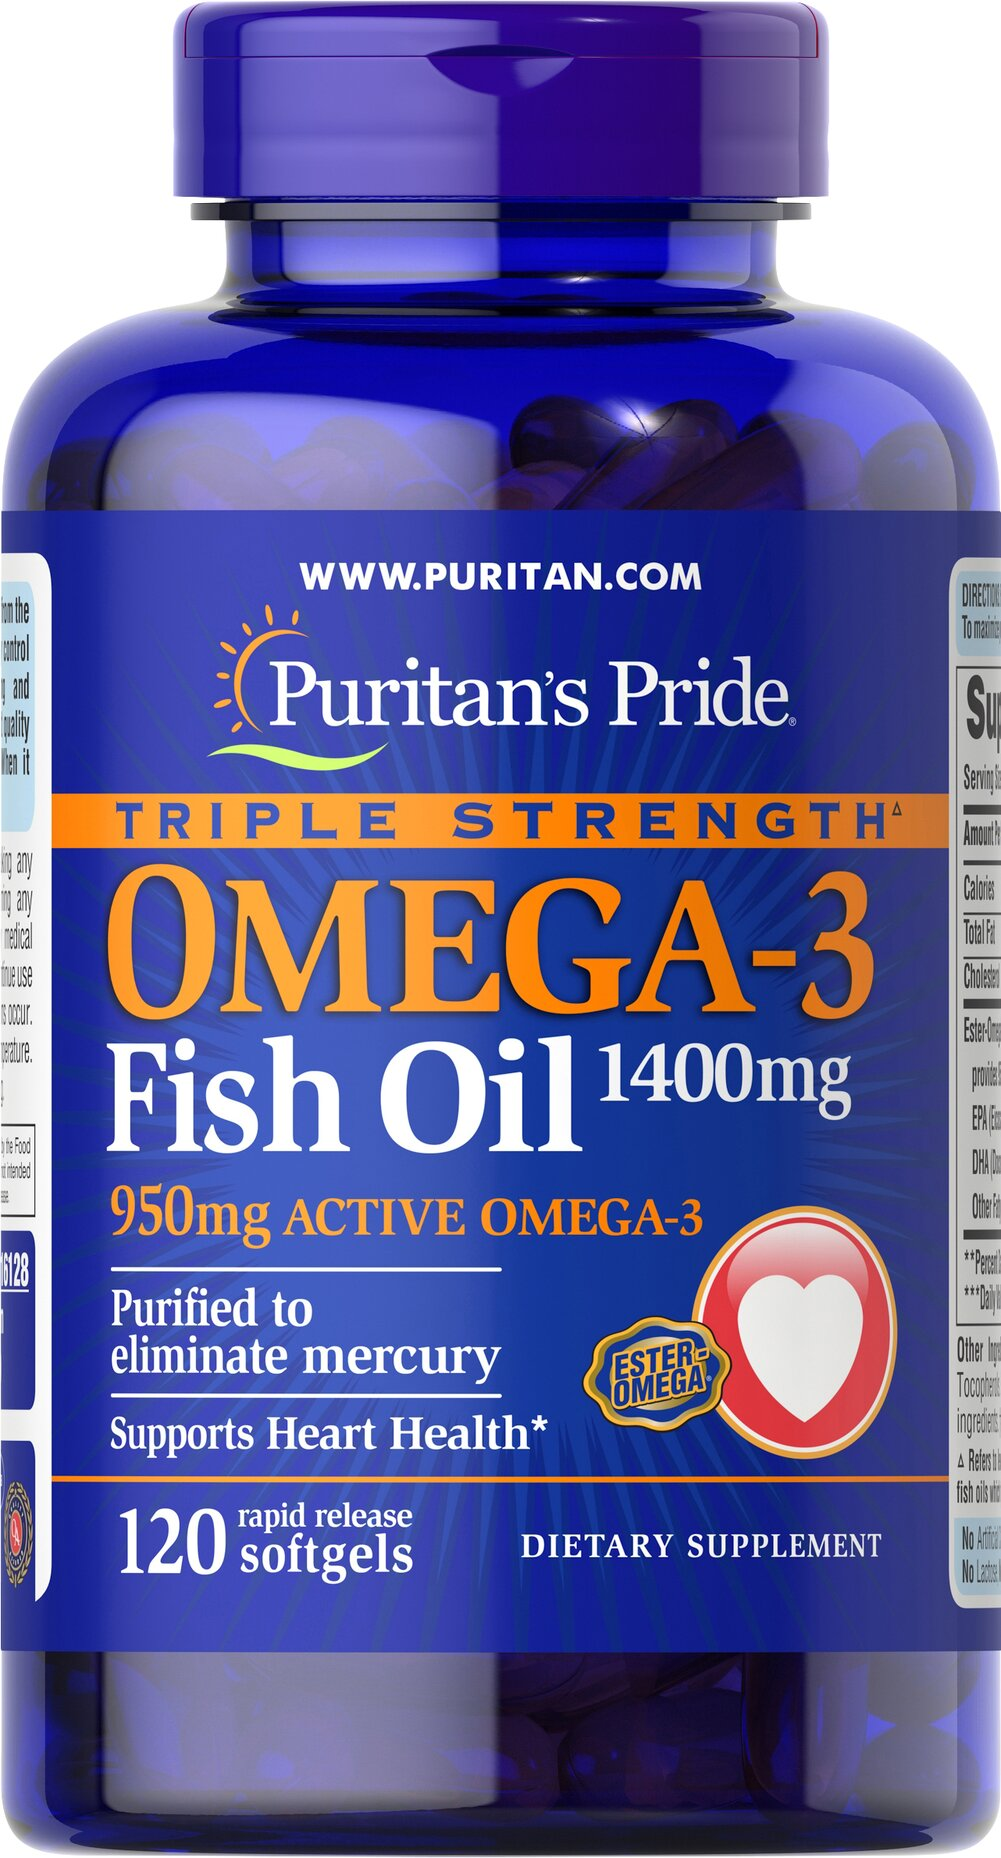 Triple Strength Omega-3 Fish Oil 1360 mg (950 mg Active Omega-3)  120 Softgels 1360 mg $31.99